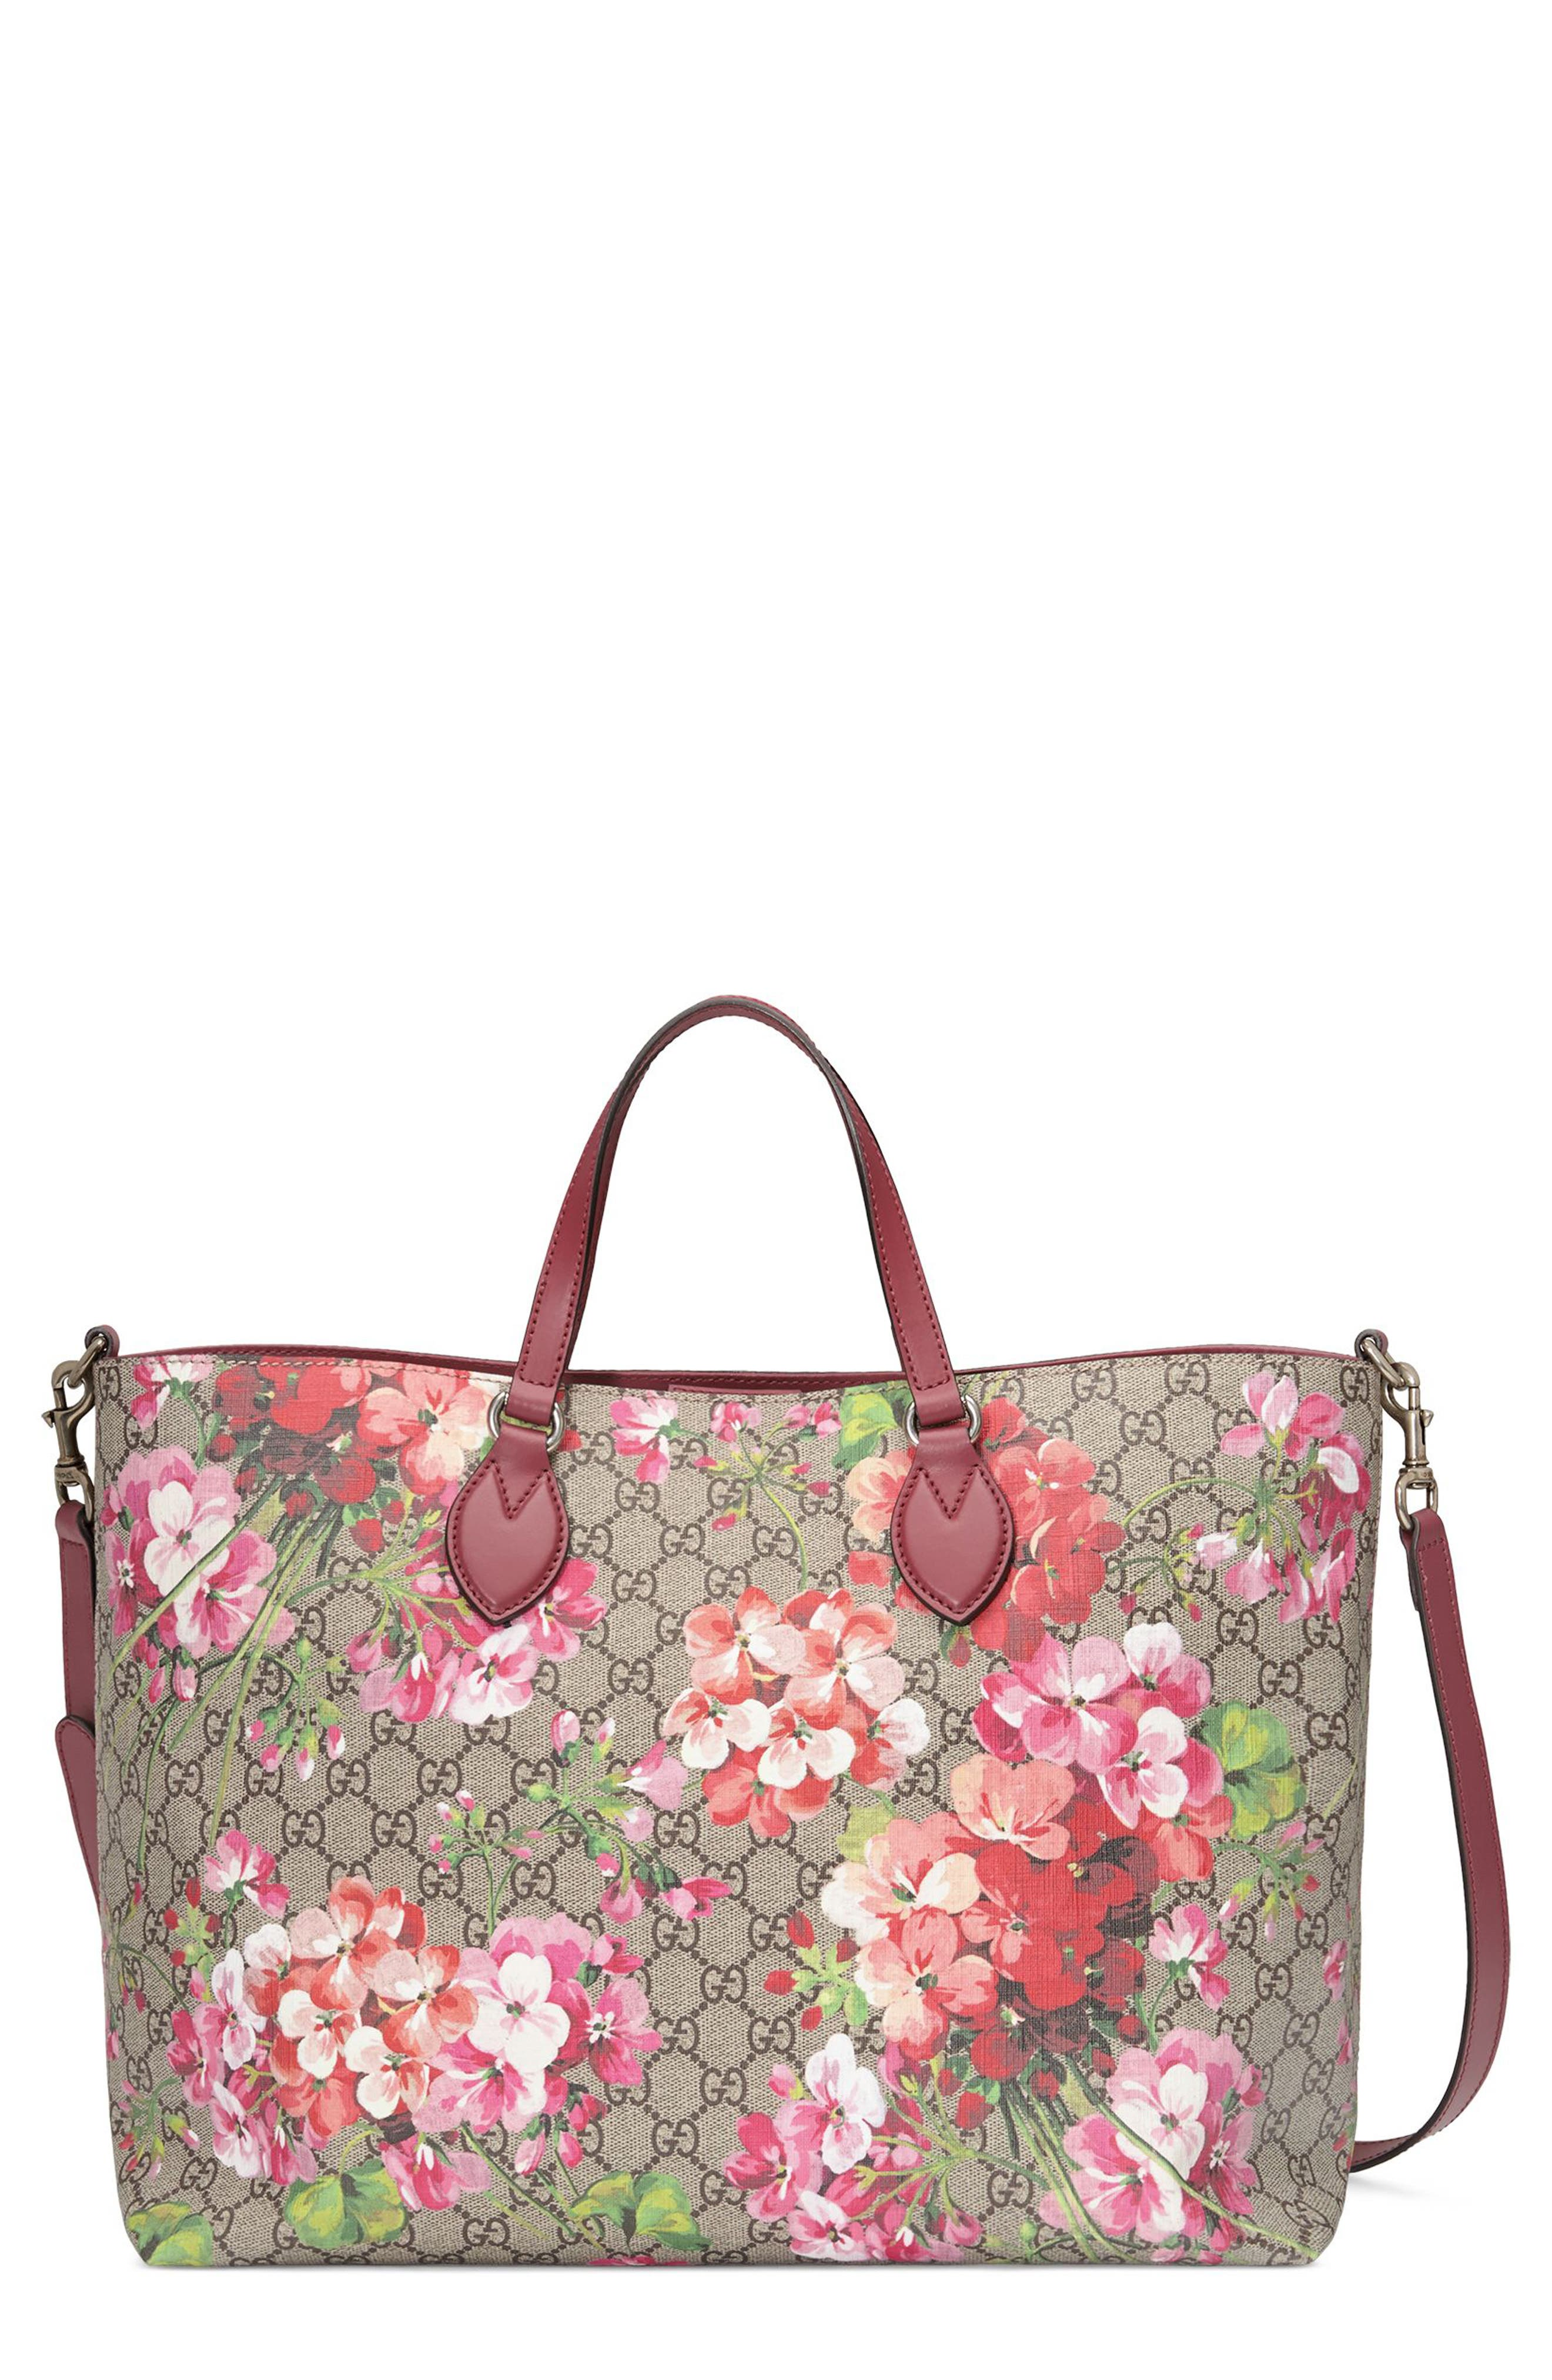 Soft GG Blooms Tote,                         Main,                         color,